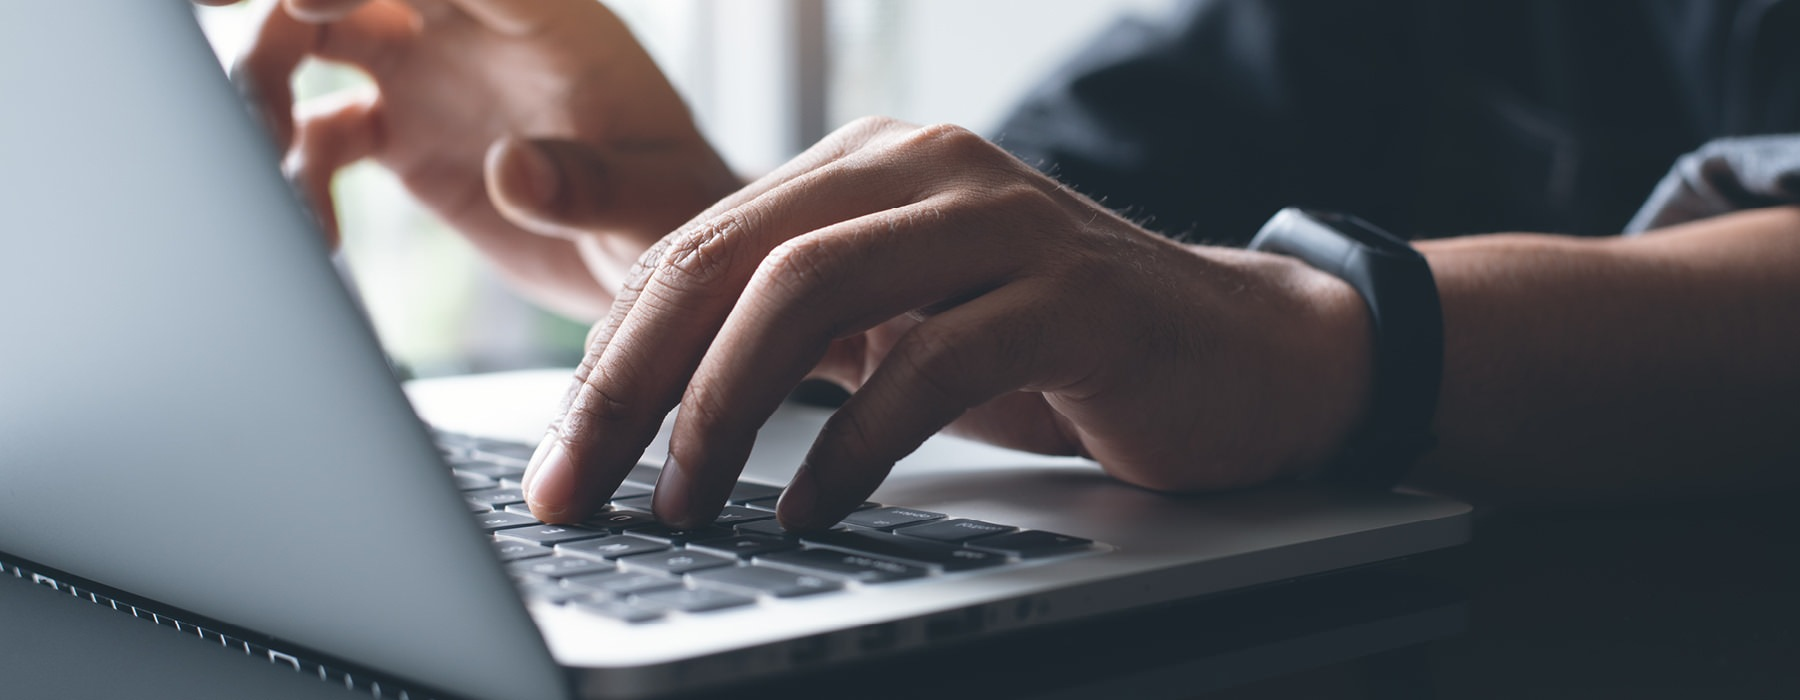 man sitting at a table typing on a laptop